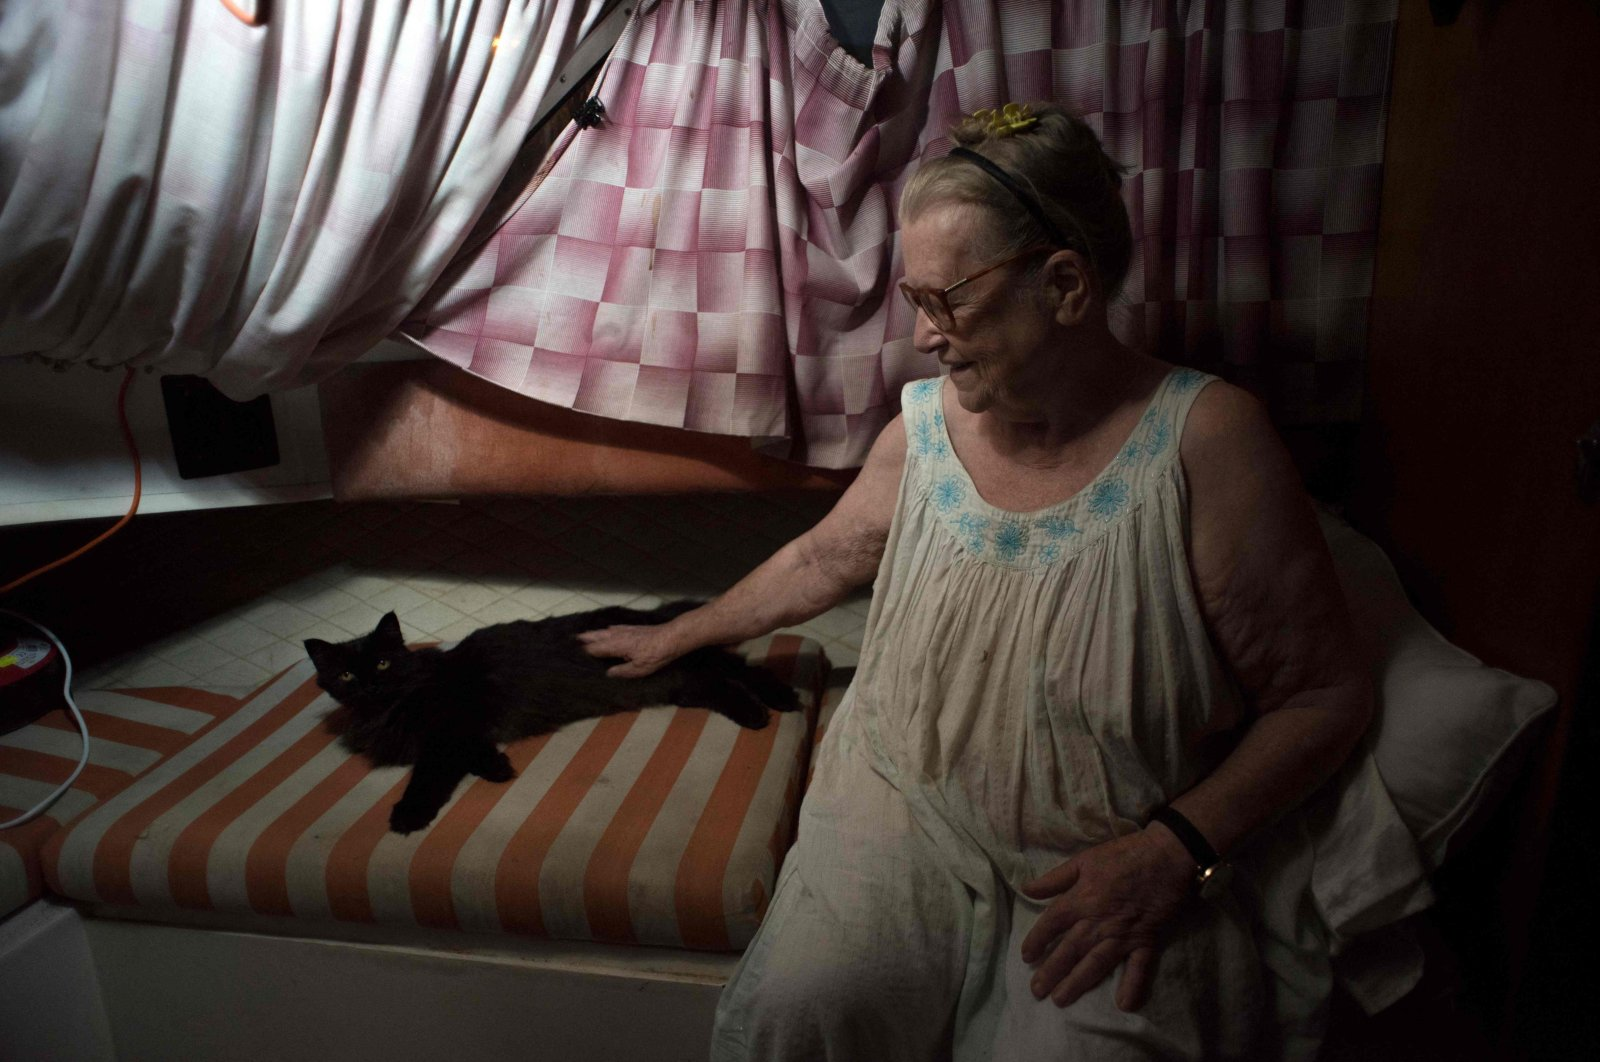 Margaretha, 80, sits next to her cat on the boat where she and her husband have settled after fleeing their home after the eruption of the Cumbre Vieja volcano, in the port of Tazacorte, on La Palma, Spain, Oct. 3, 2021. (AFP Photo)